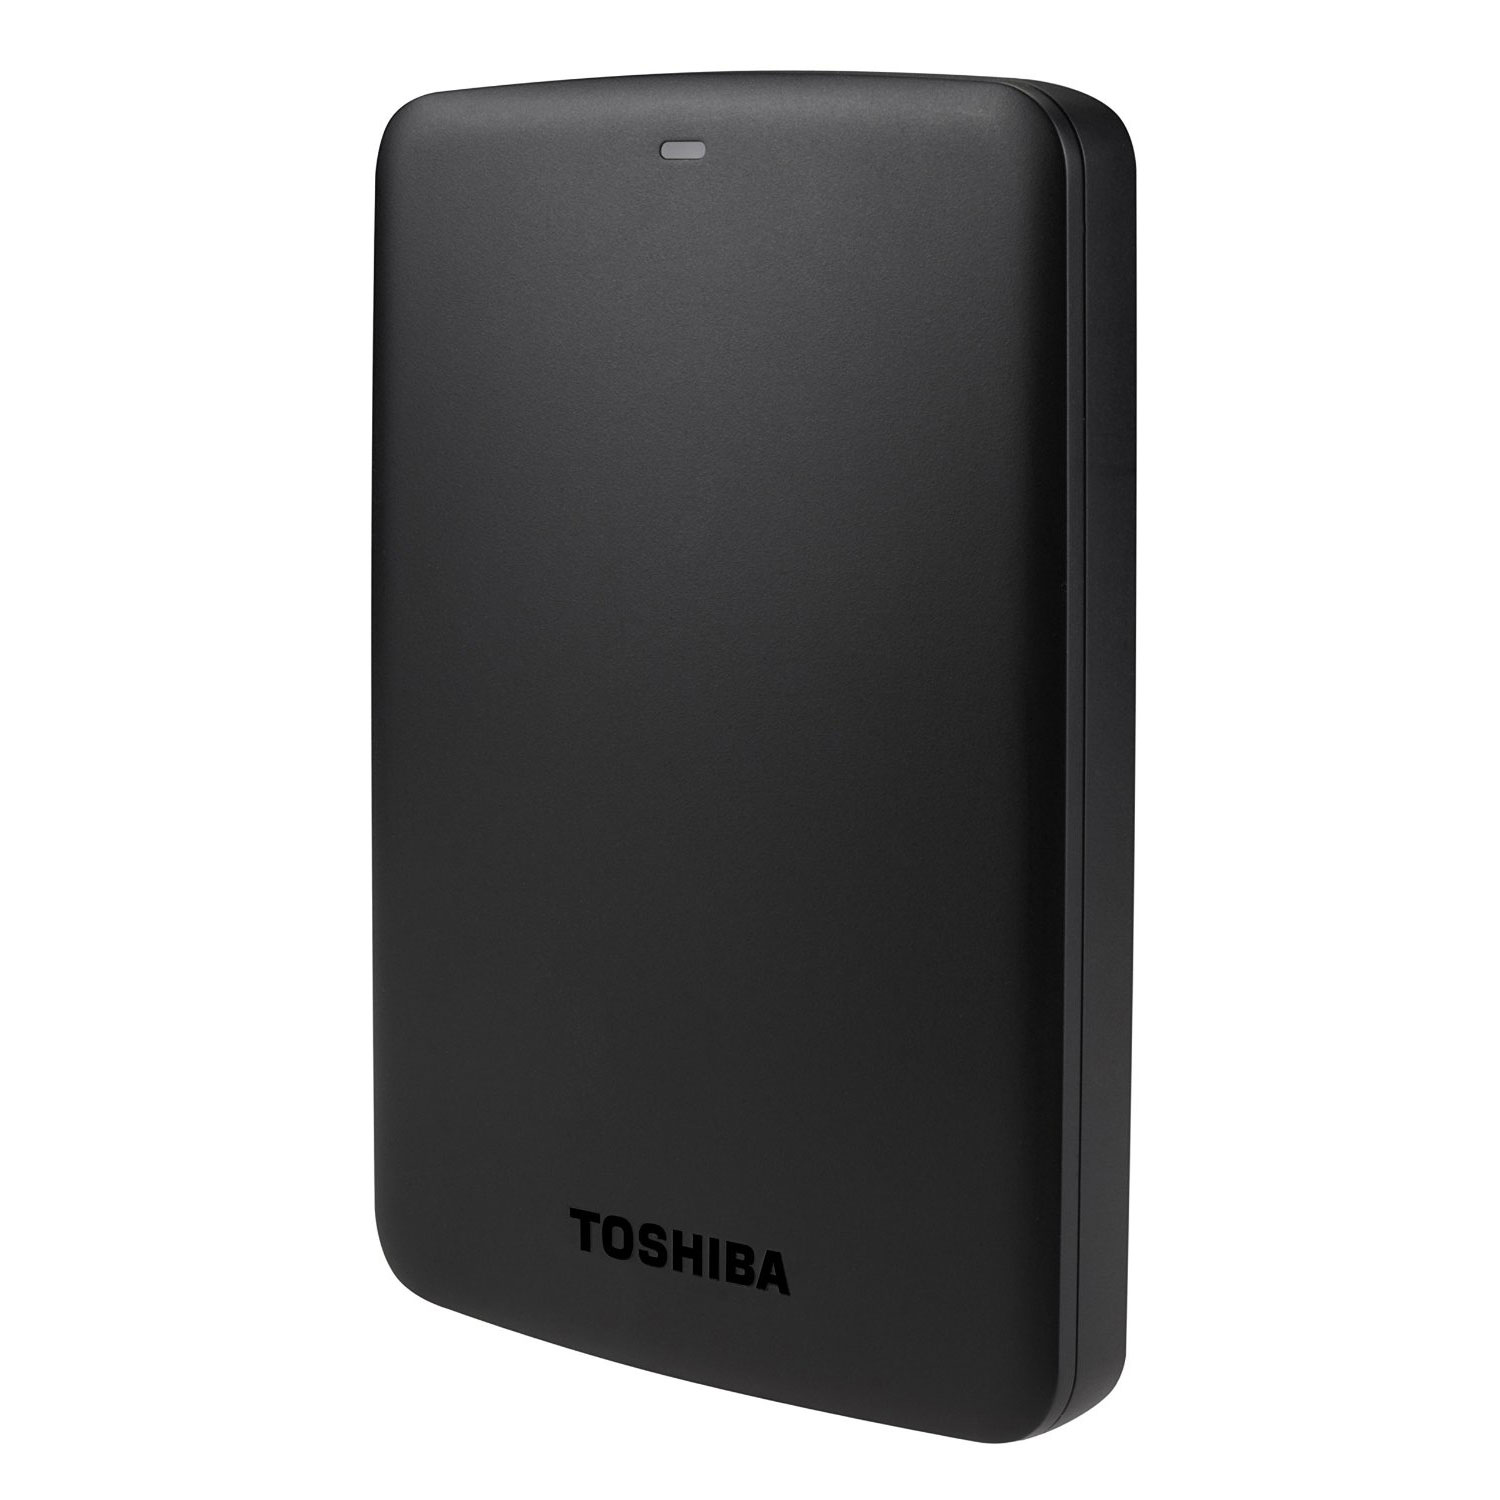 toshiba canvio basics 500 go noir disque dur externe toshiba sur ldlc. Black Bedroom Furniture Sets. Home Design Ideas